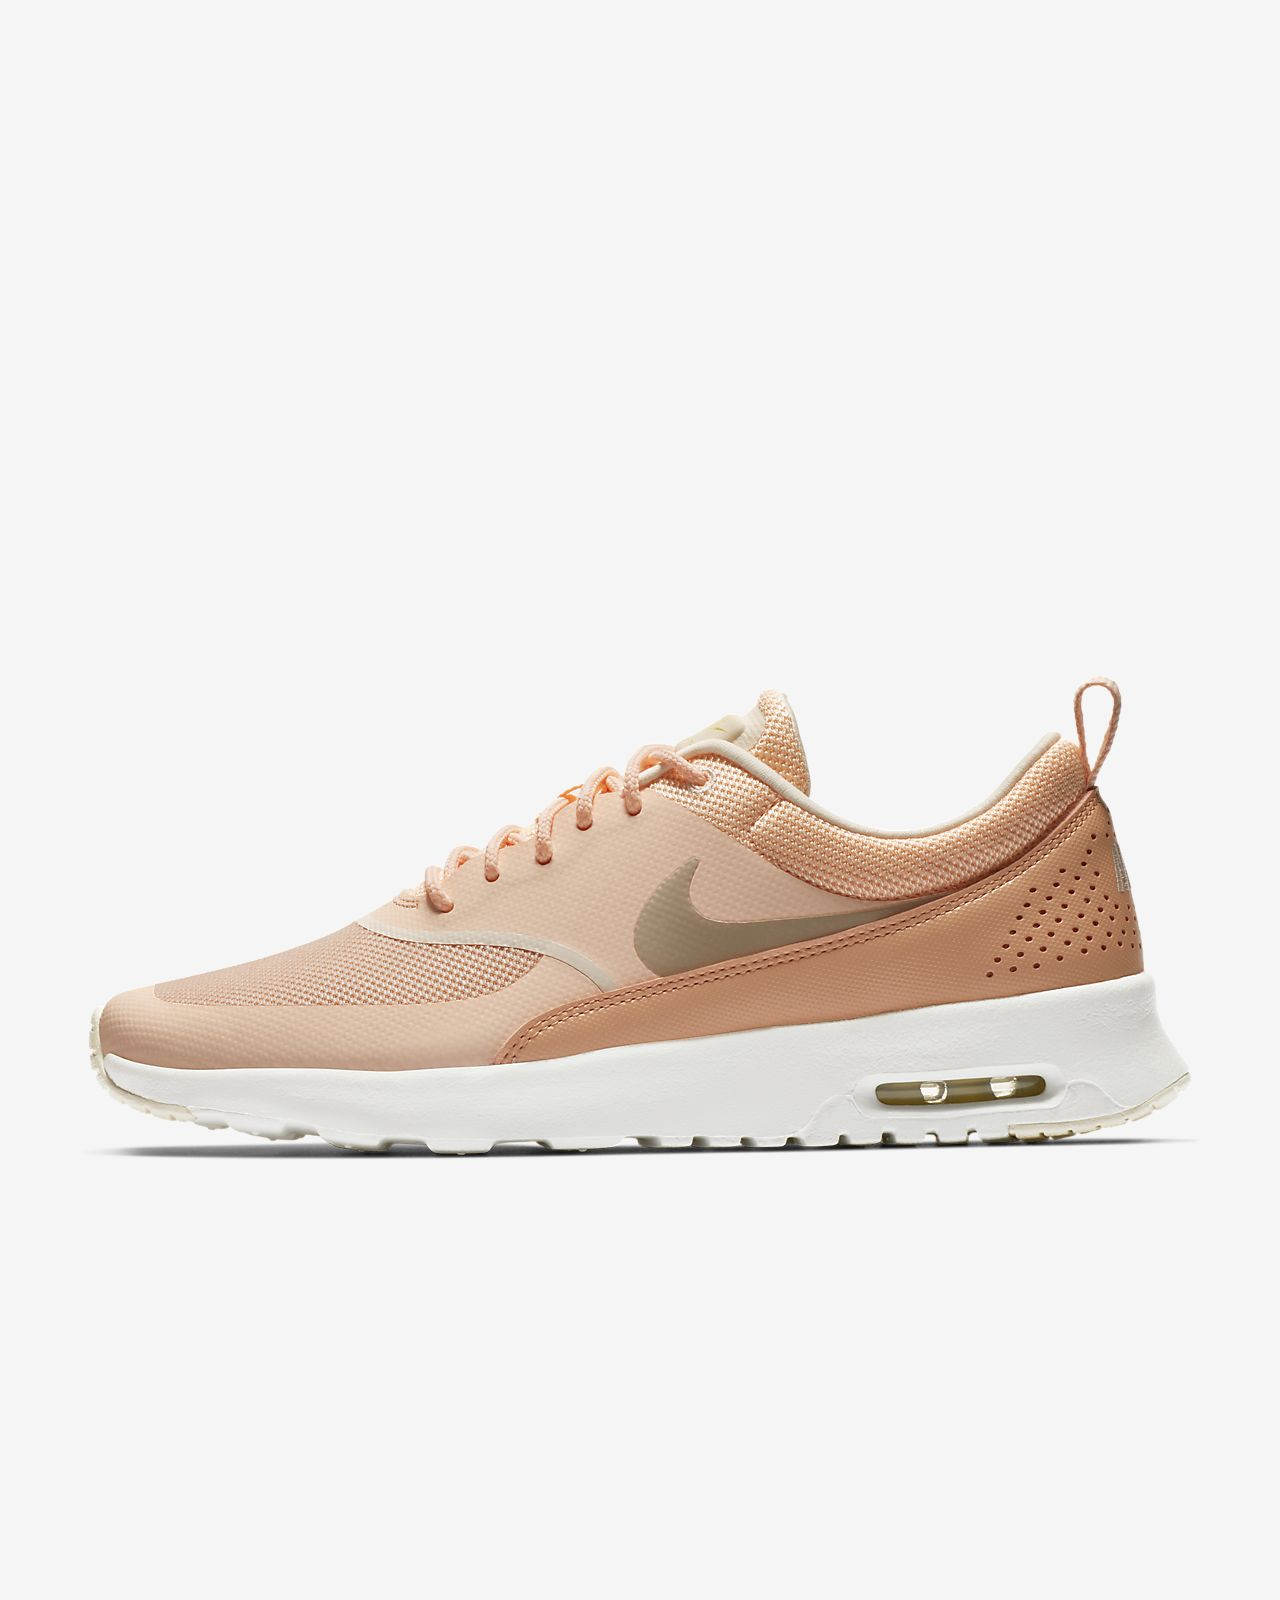 uk availability 9e414 86f31 ... Nike Air Max Thea Damenschuh